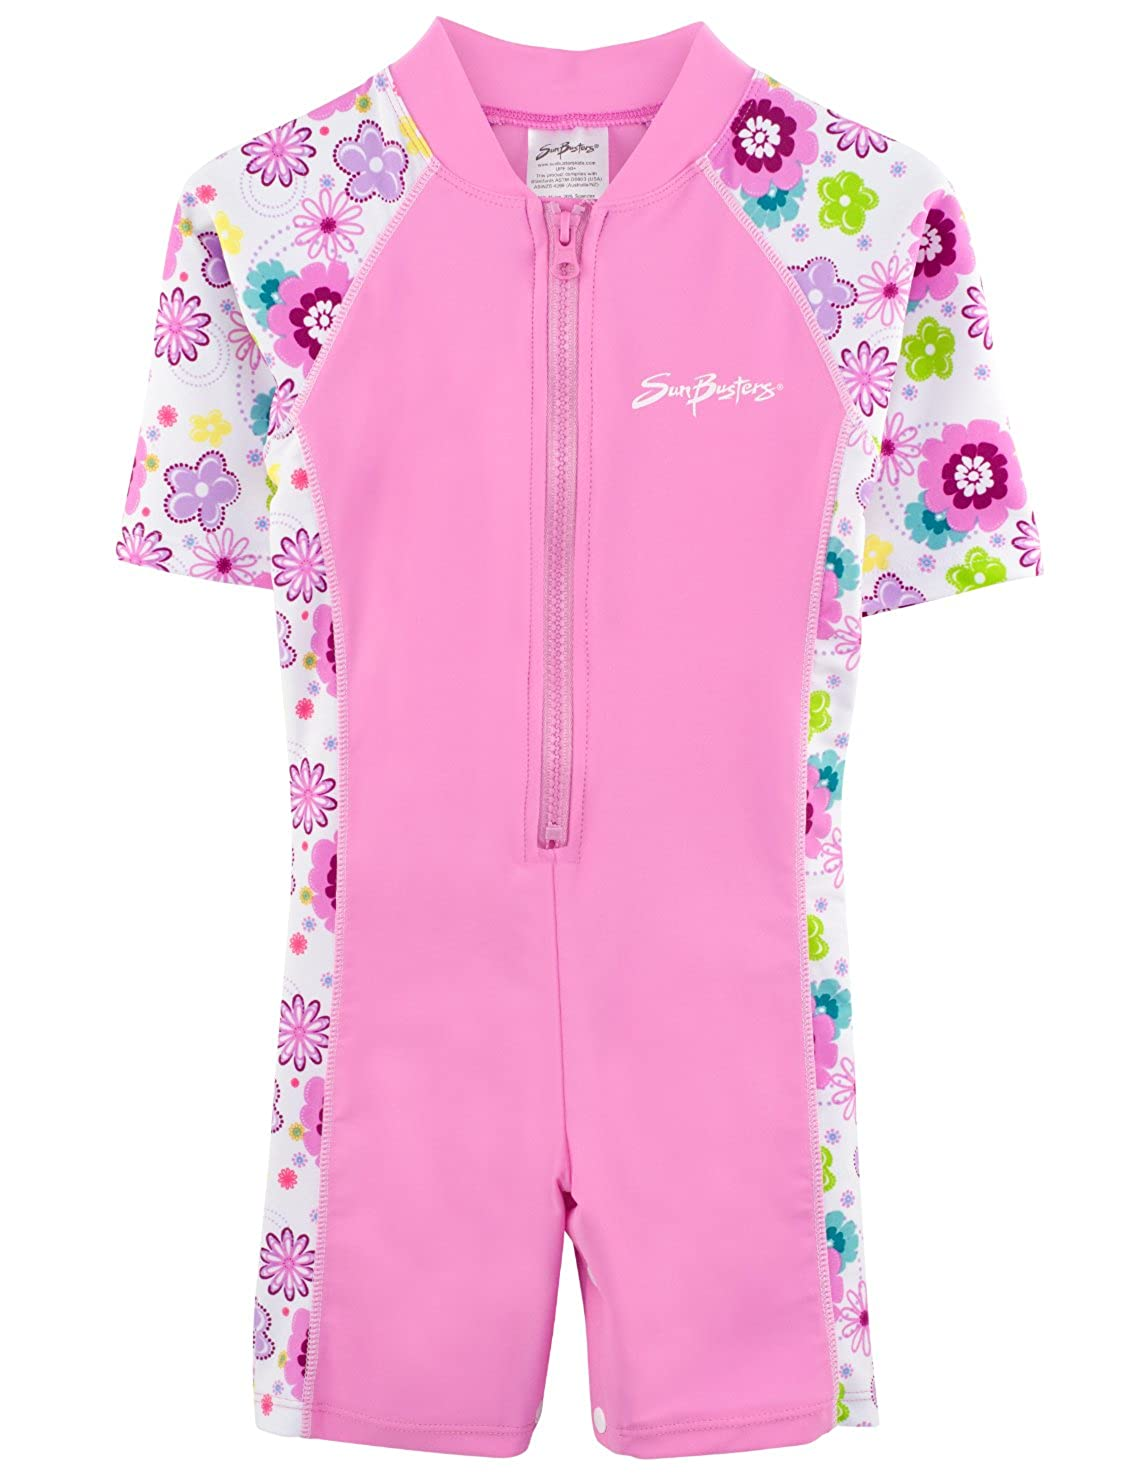 SunBusters Girls One Piece Short Sleeve Sunsuit, UPF 50+ Sun Protection